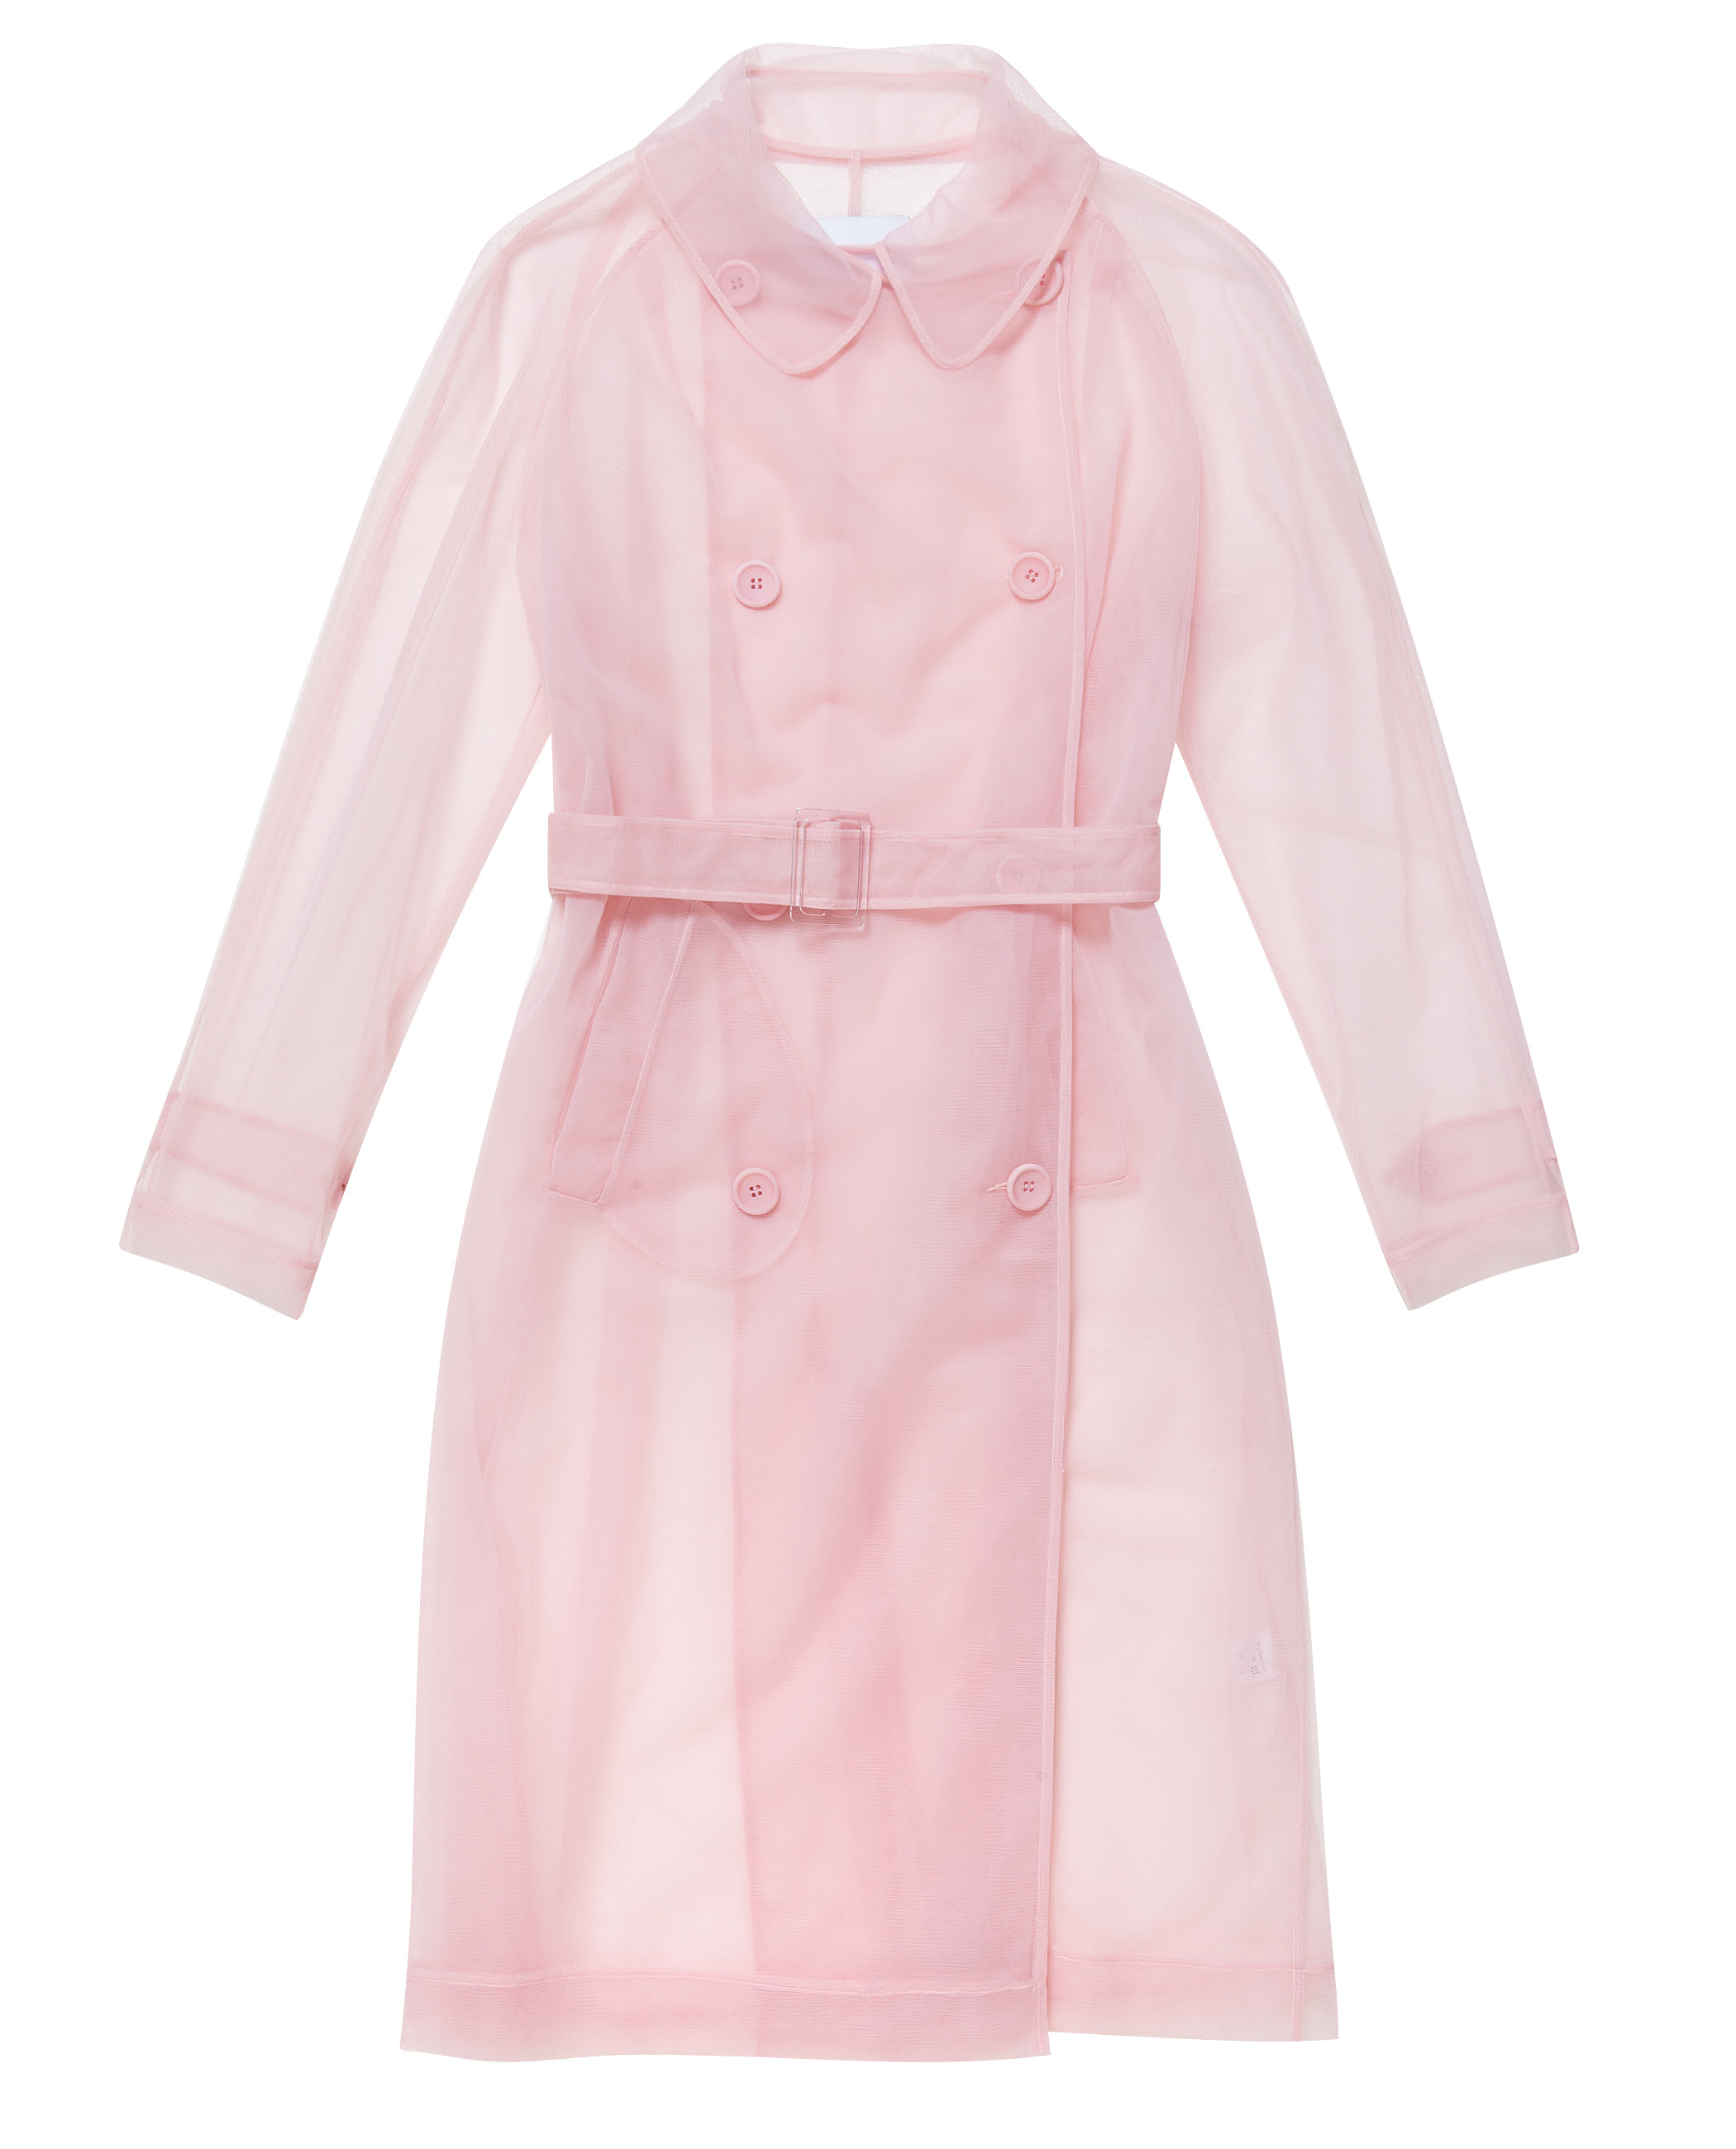 Simone rocha Tulle Trench Coat in Pink   Lyst